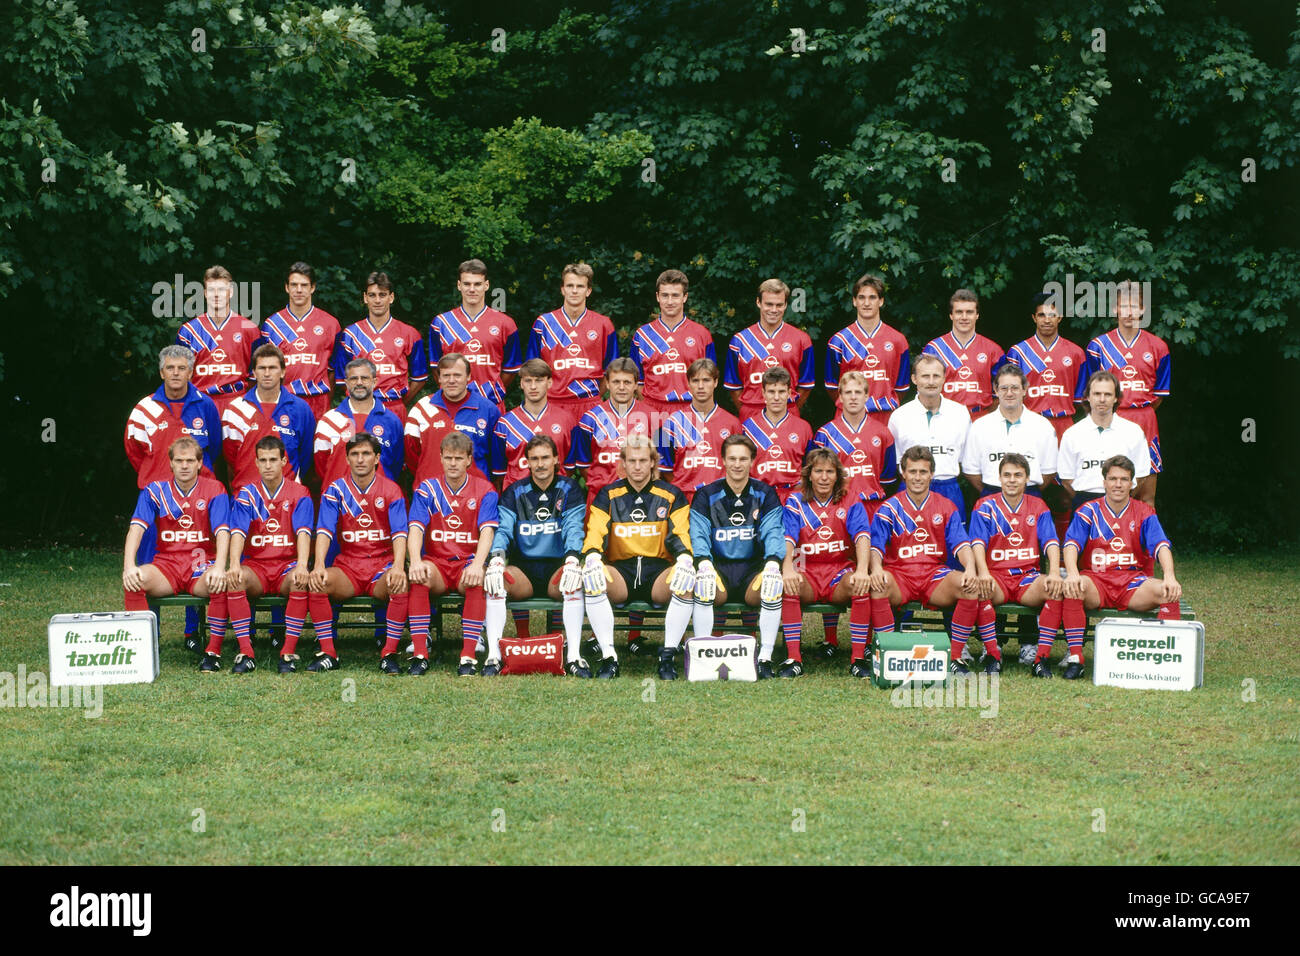 sports, soccer / football, German professional soccer league, FC Bayern Muenchen, group picture, 1993/1994, Additional - Stock Image